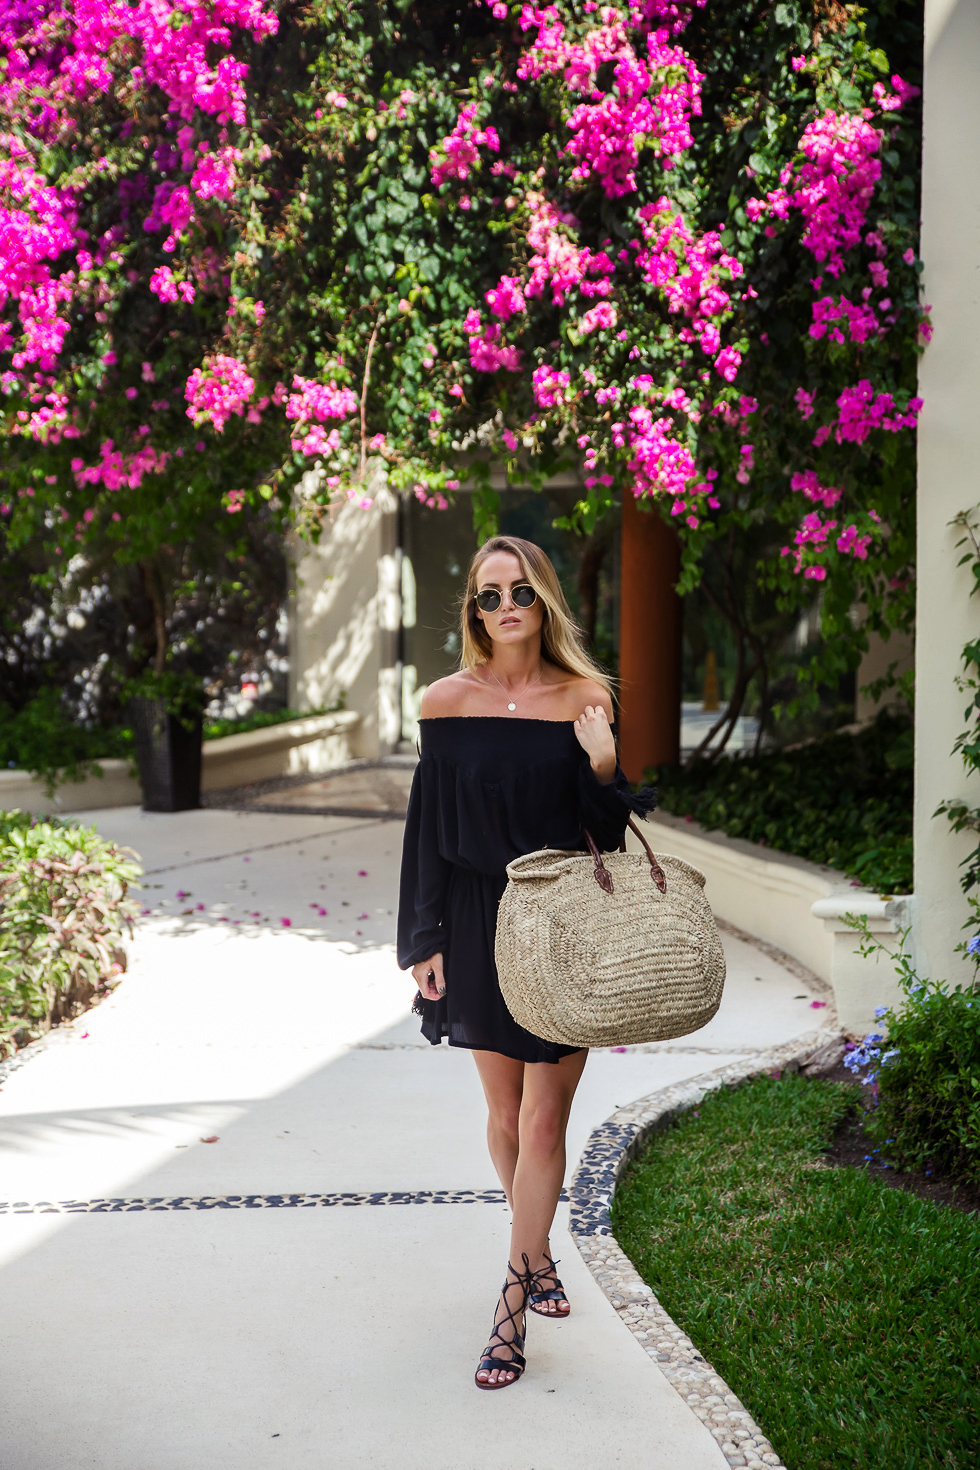 Kristin Sundberg is rocking the off-the-shoulder trend in a cute and casual black shoulderless dress, paired with a straw beach bag and strappy sandals. Everything about this look screams 'summer', and we love it! Brands not specified.